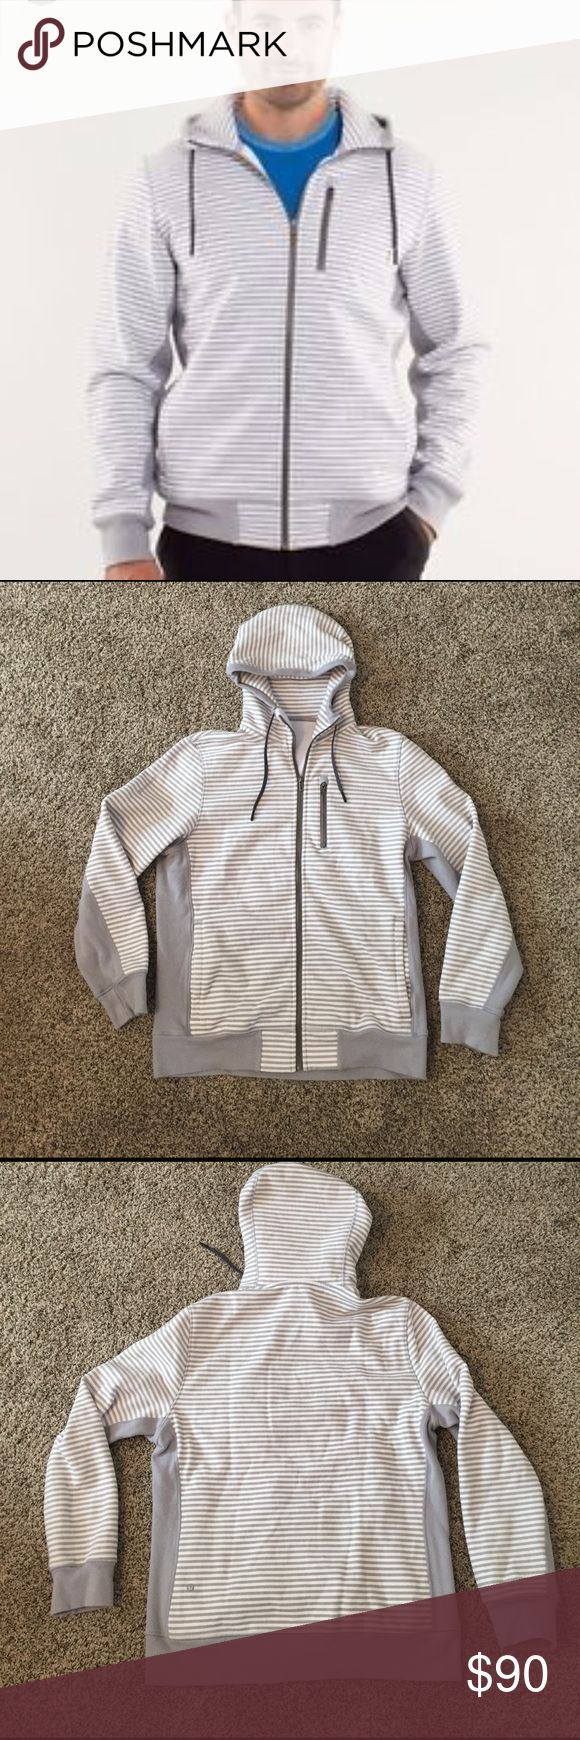 Lululemon men's sequence hoodie Grey and white stripes with solid grey ribbing on sides, arm sides and bottom. Medium weight, fleece inside. Pockets on front  and zippered pocket on chest. Hood with drawstring. Excellent condition lululemon athletica Shirts Sweatshirts & Hoodies